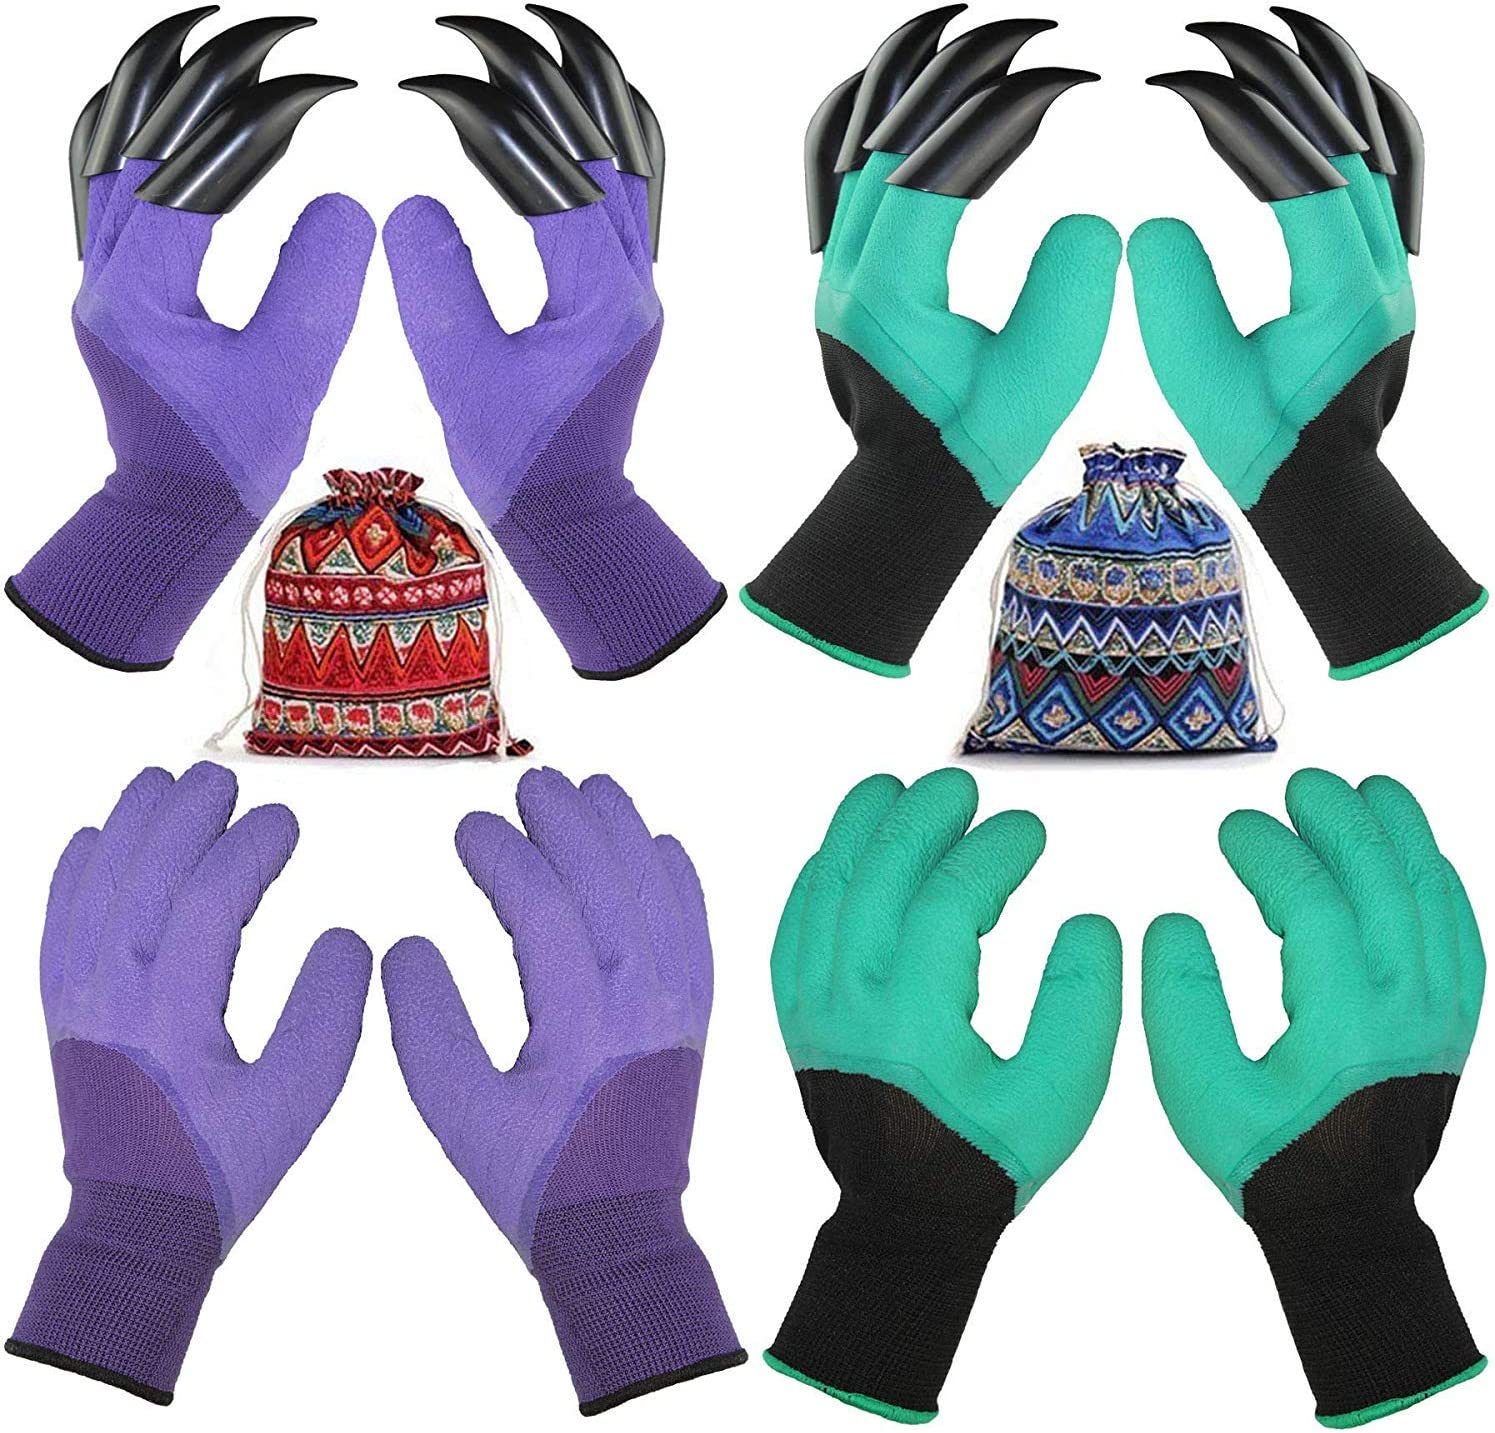 4 Pairs Garden Gloves With Fingertips Claws,Best Gift For Gardener,2 Pairs Working Gloves With Double Claws,2 Pairs without Claws,For Digging and Planting,Breathable. (purple and light green)